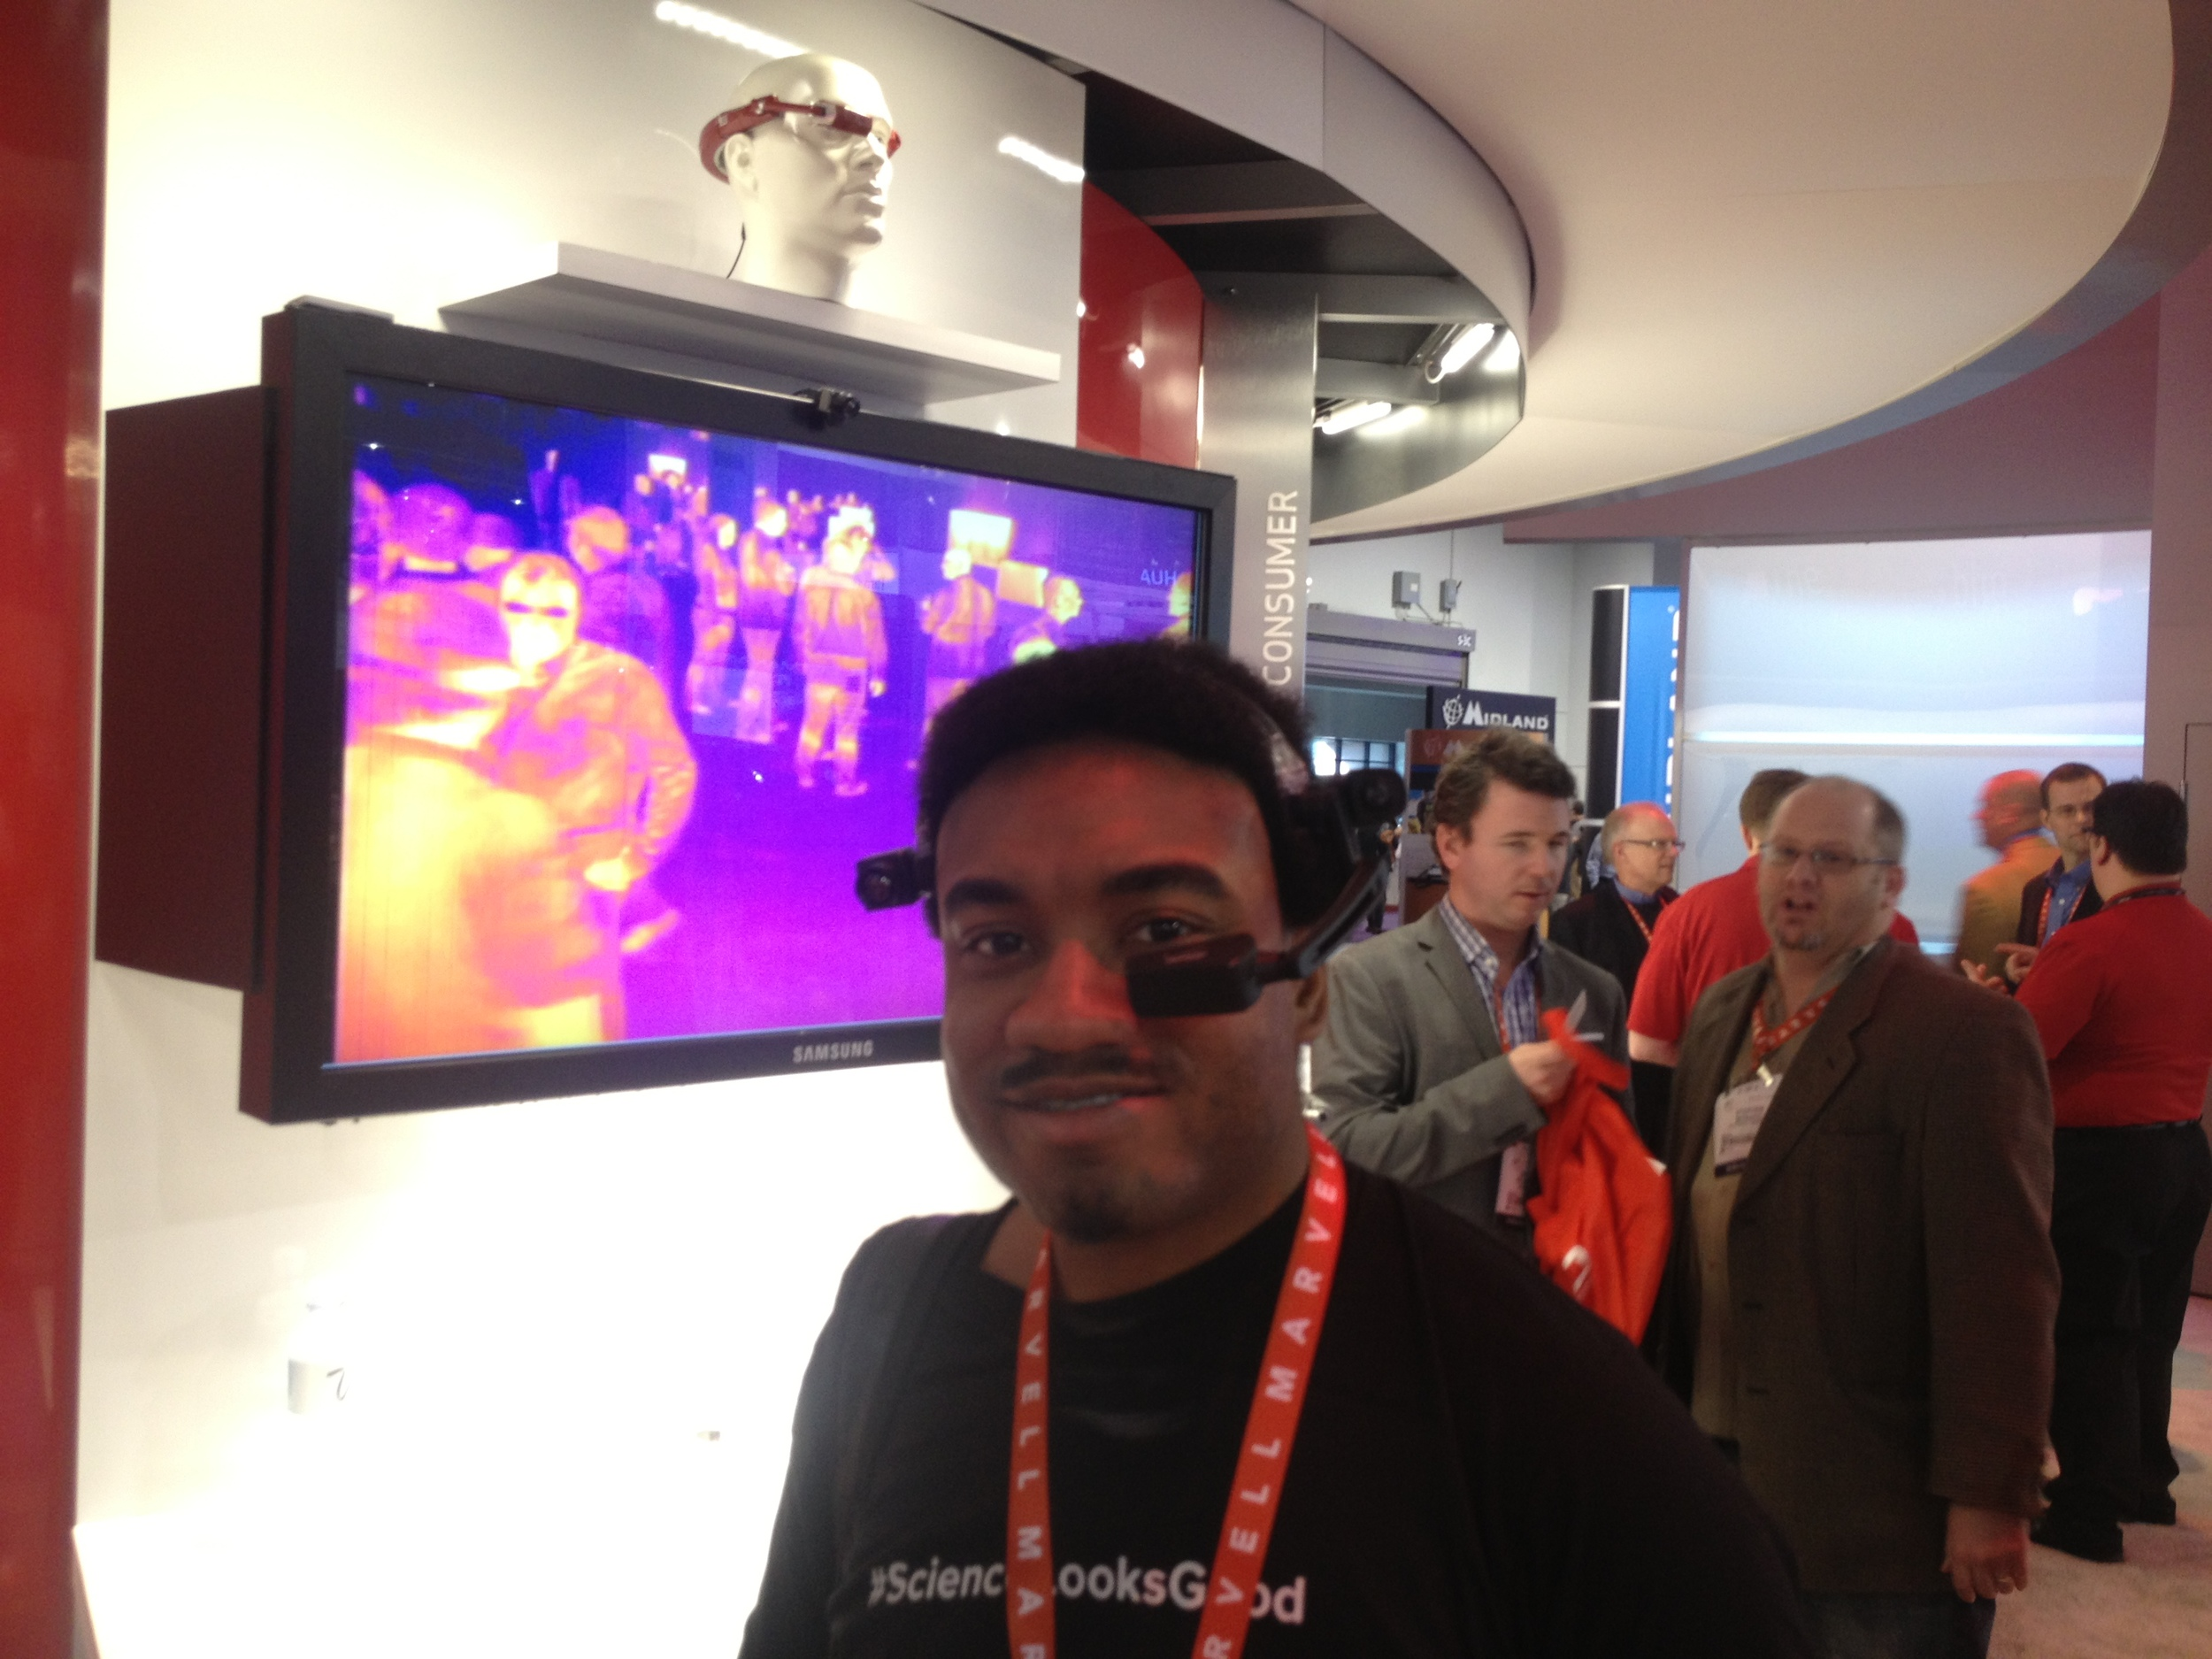 Me, at CES 2012